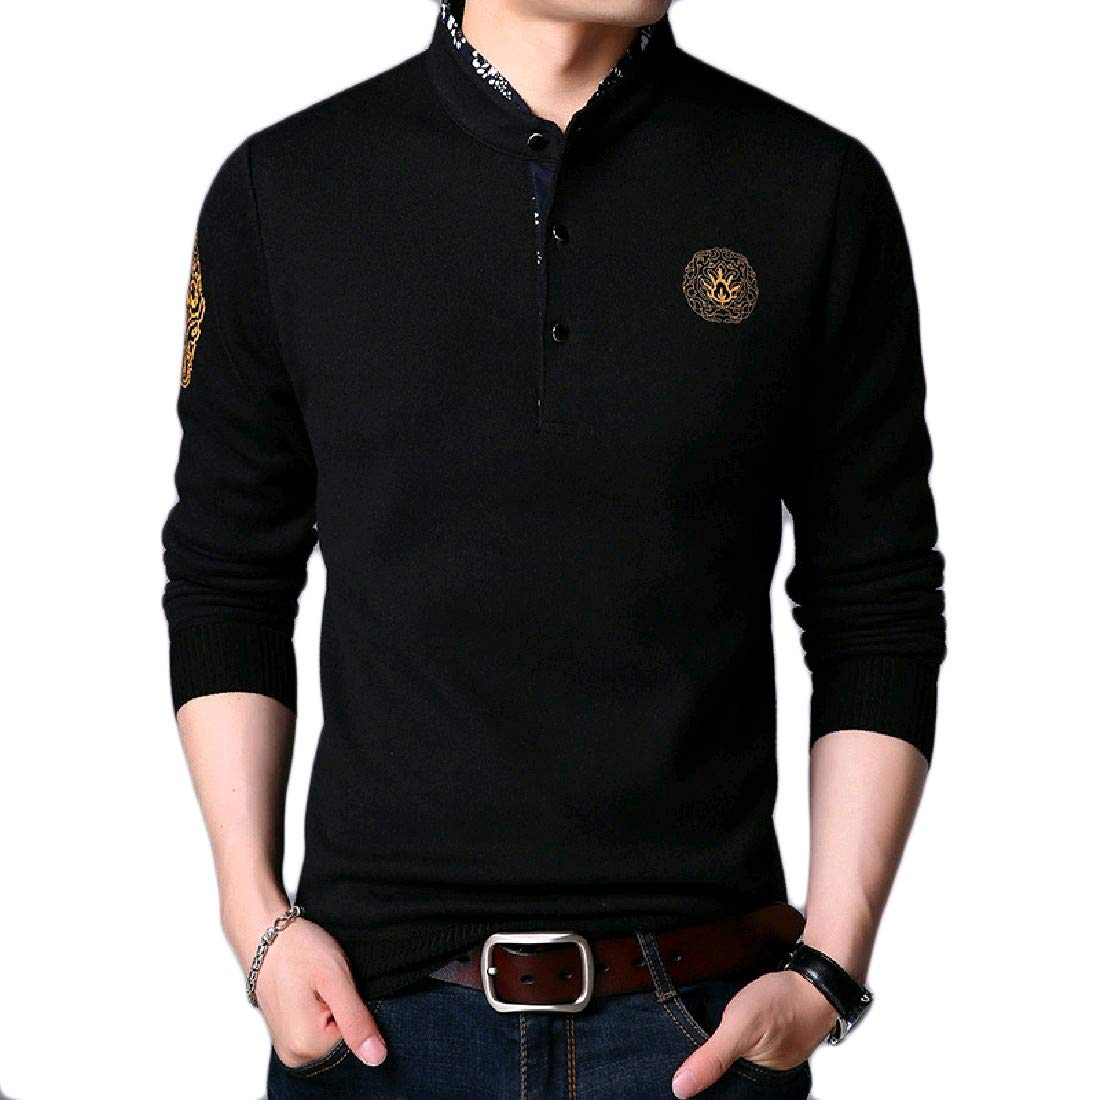 VITryst-Men Single-Breasted Plus Size Embroidery Tshirt Tops Tees